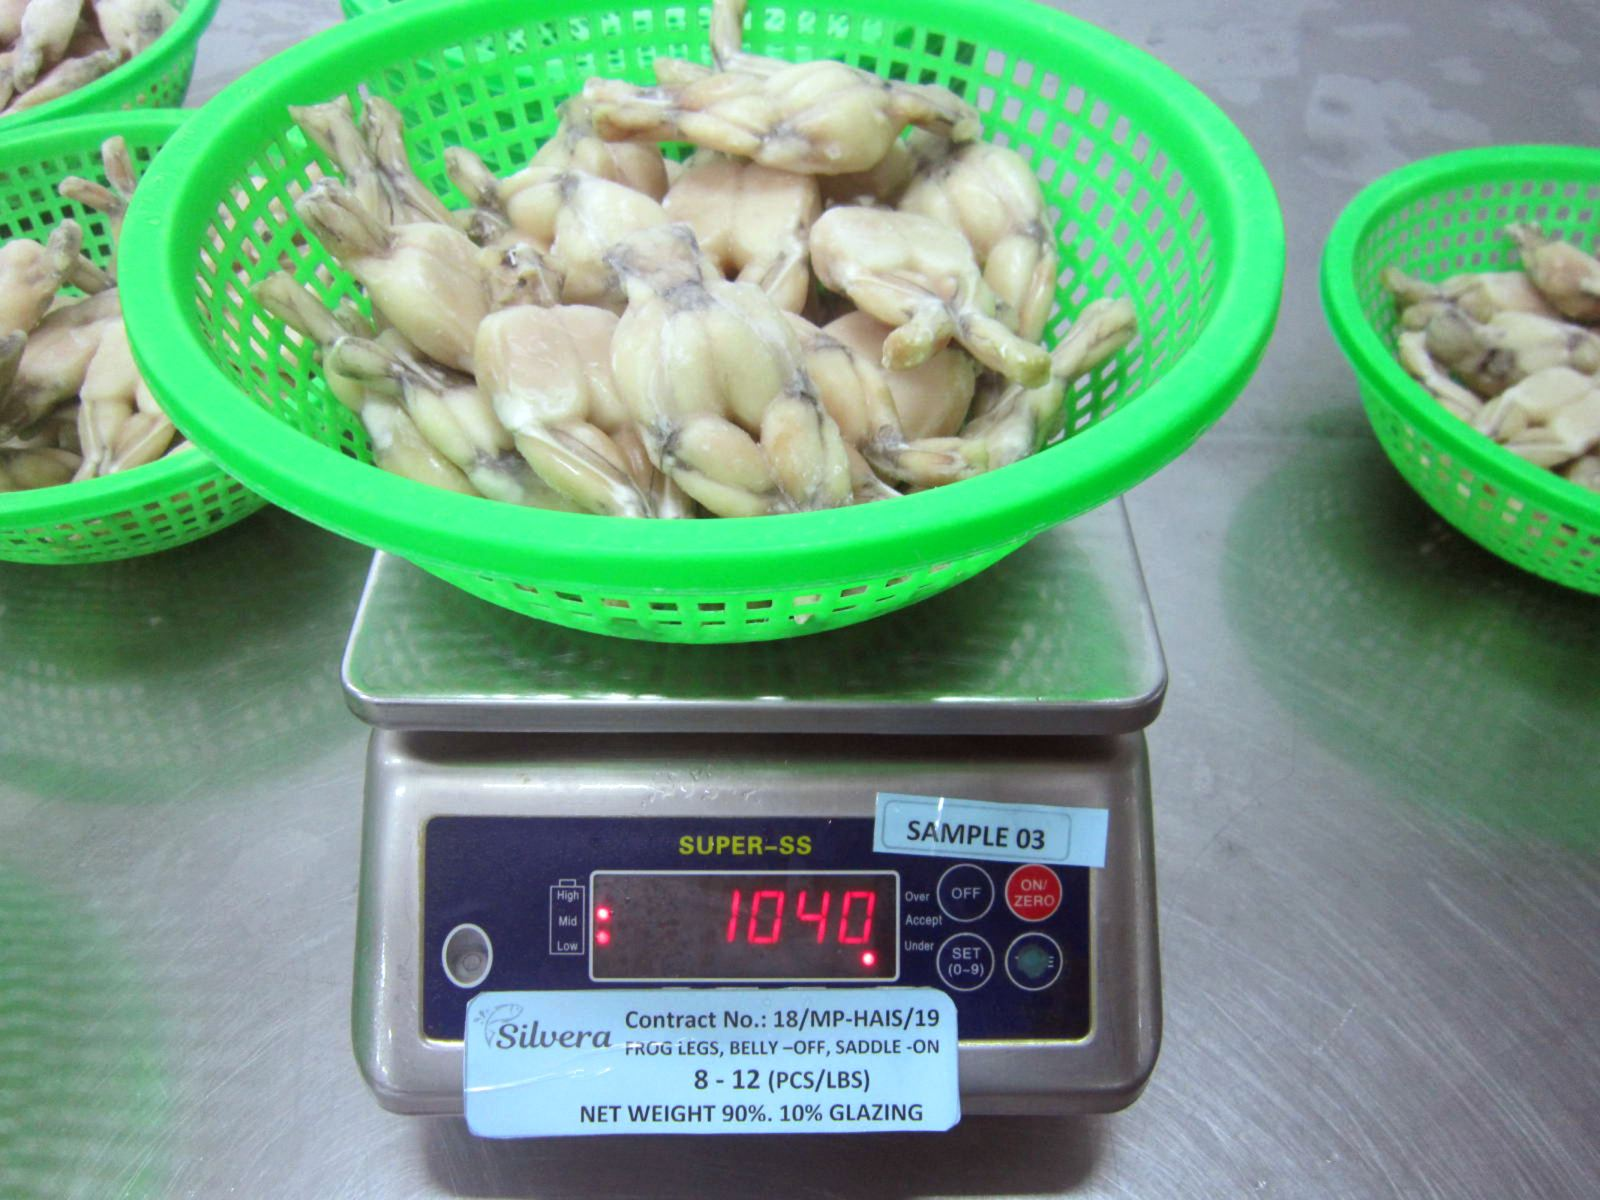 Weighing Frozen Frog Legs